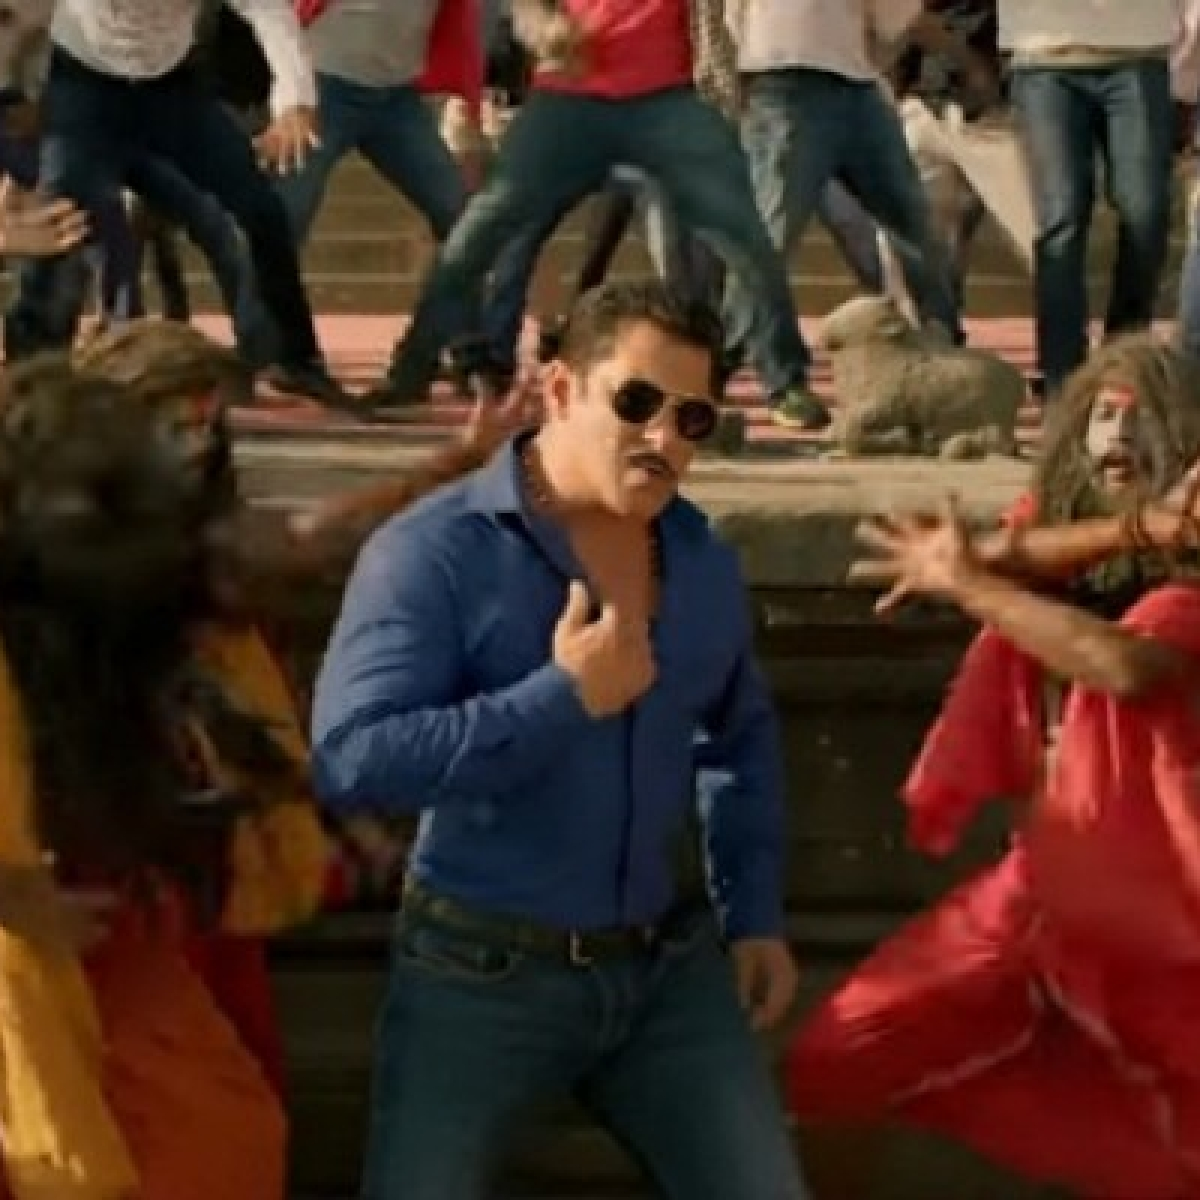 Salman Khan's 'Dabangg 3' in trouble for showing sages dance in a hideous and objectionable manner